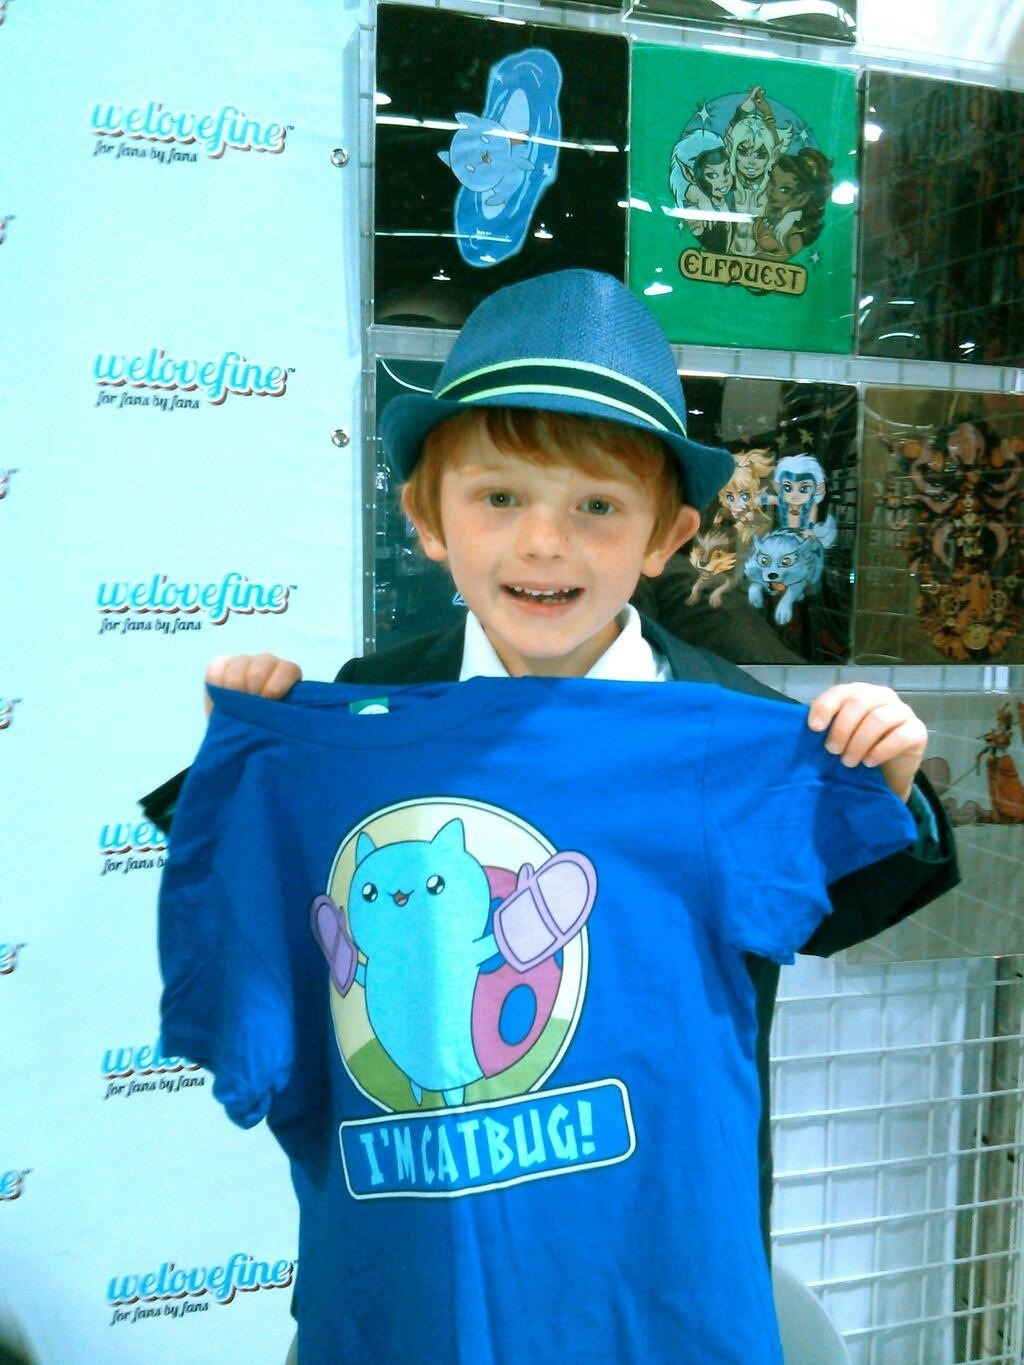 Go say howdy to Sam, you WonderConners. welovefineshirts:  Hey WonderCon! Sam Lavagnino, AKA Catbug from Bravest Warriors, is HERE at our booth signing right now! Booth #1219! And dont forget we have a whole slew of Catbug merch in our featured collection at WeLoveFine.com!!